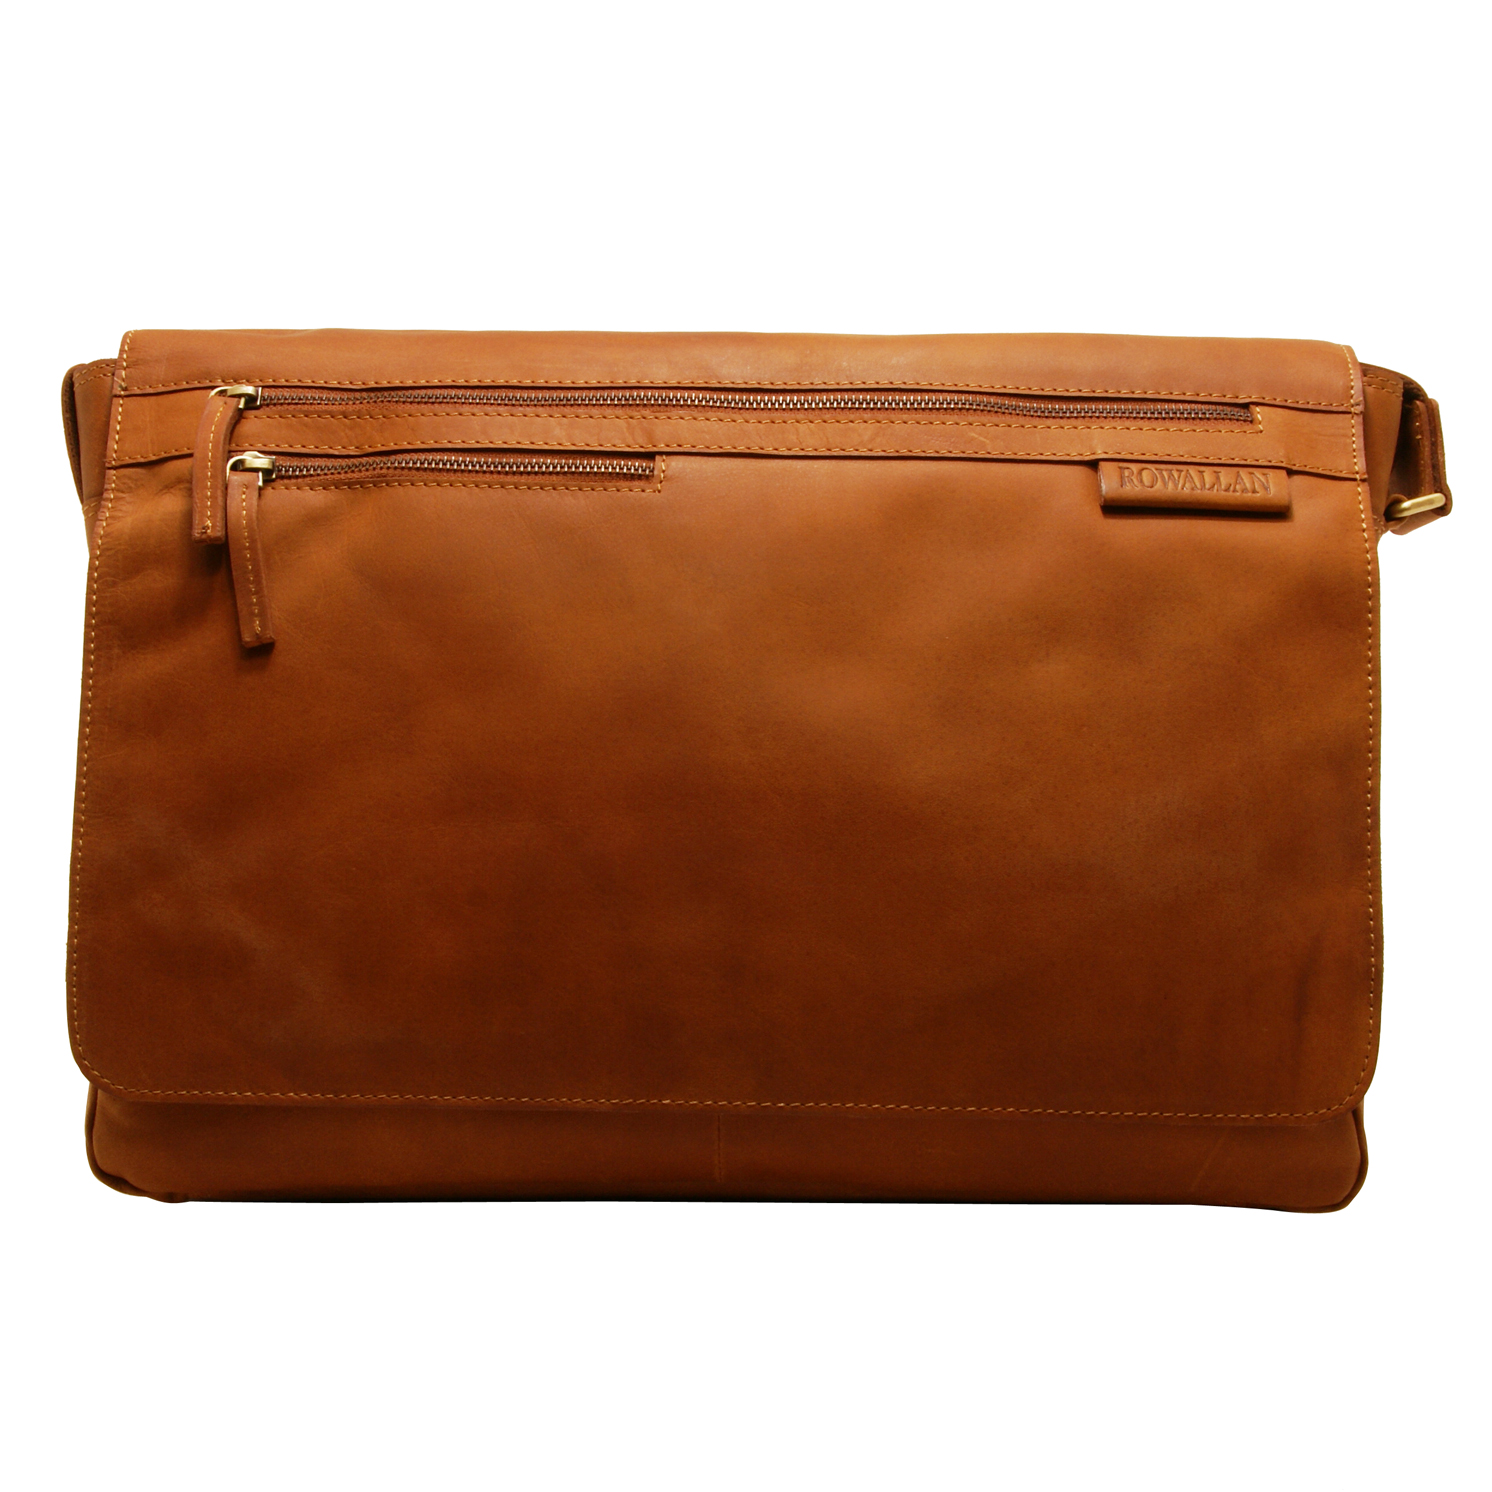 Rowallan – Large Cognac Pittsburgh Messenger Bag with Laptop Sleeve in Buffalo Leather